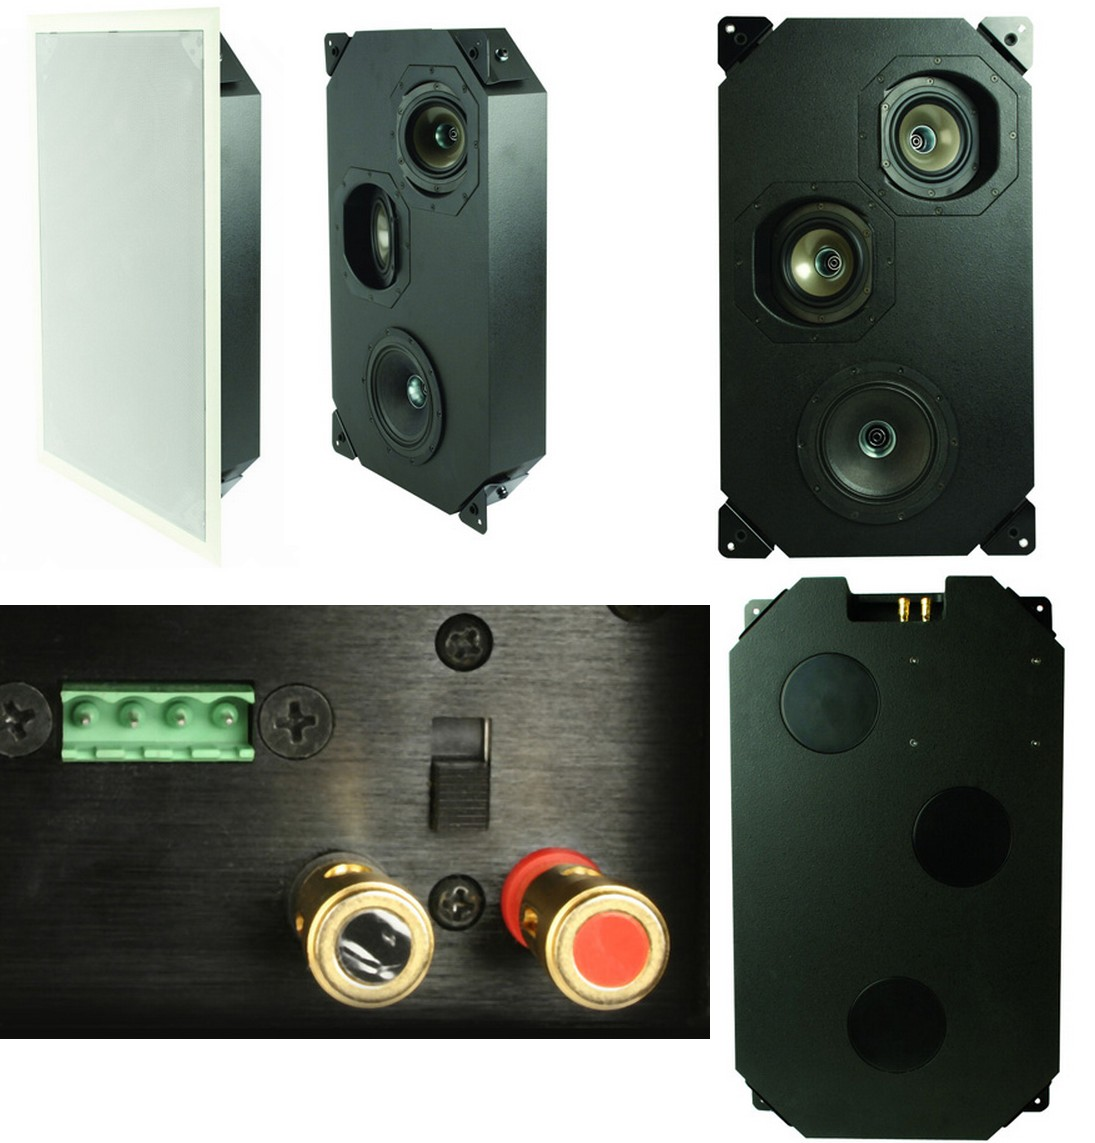 Loa Tannoy iW60 EFX chat luong